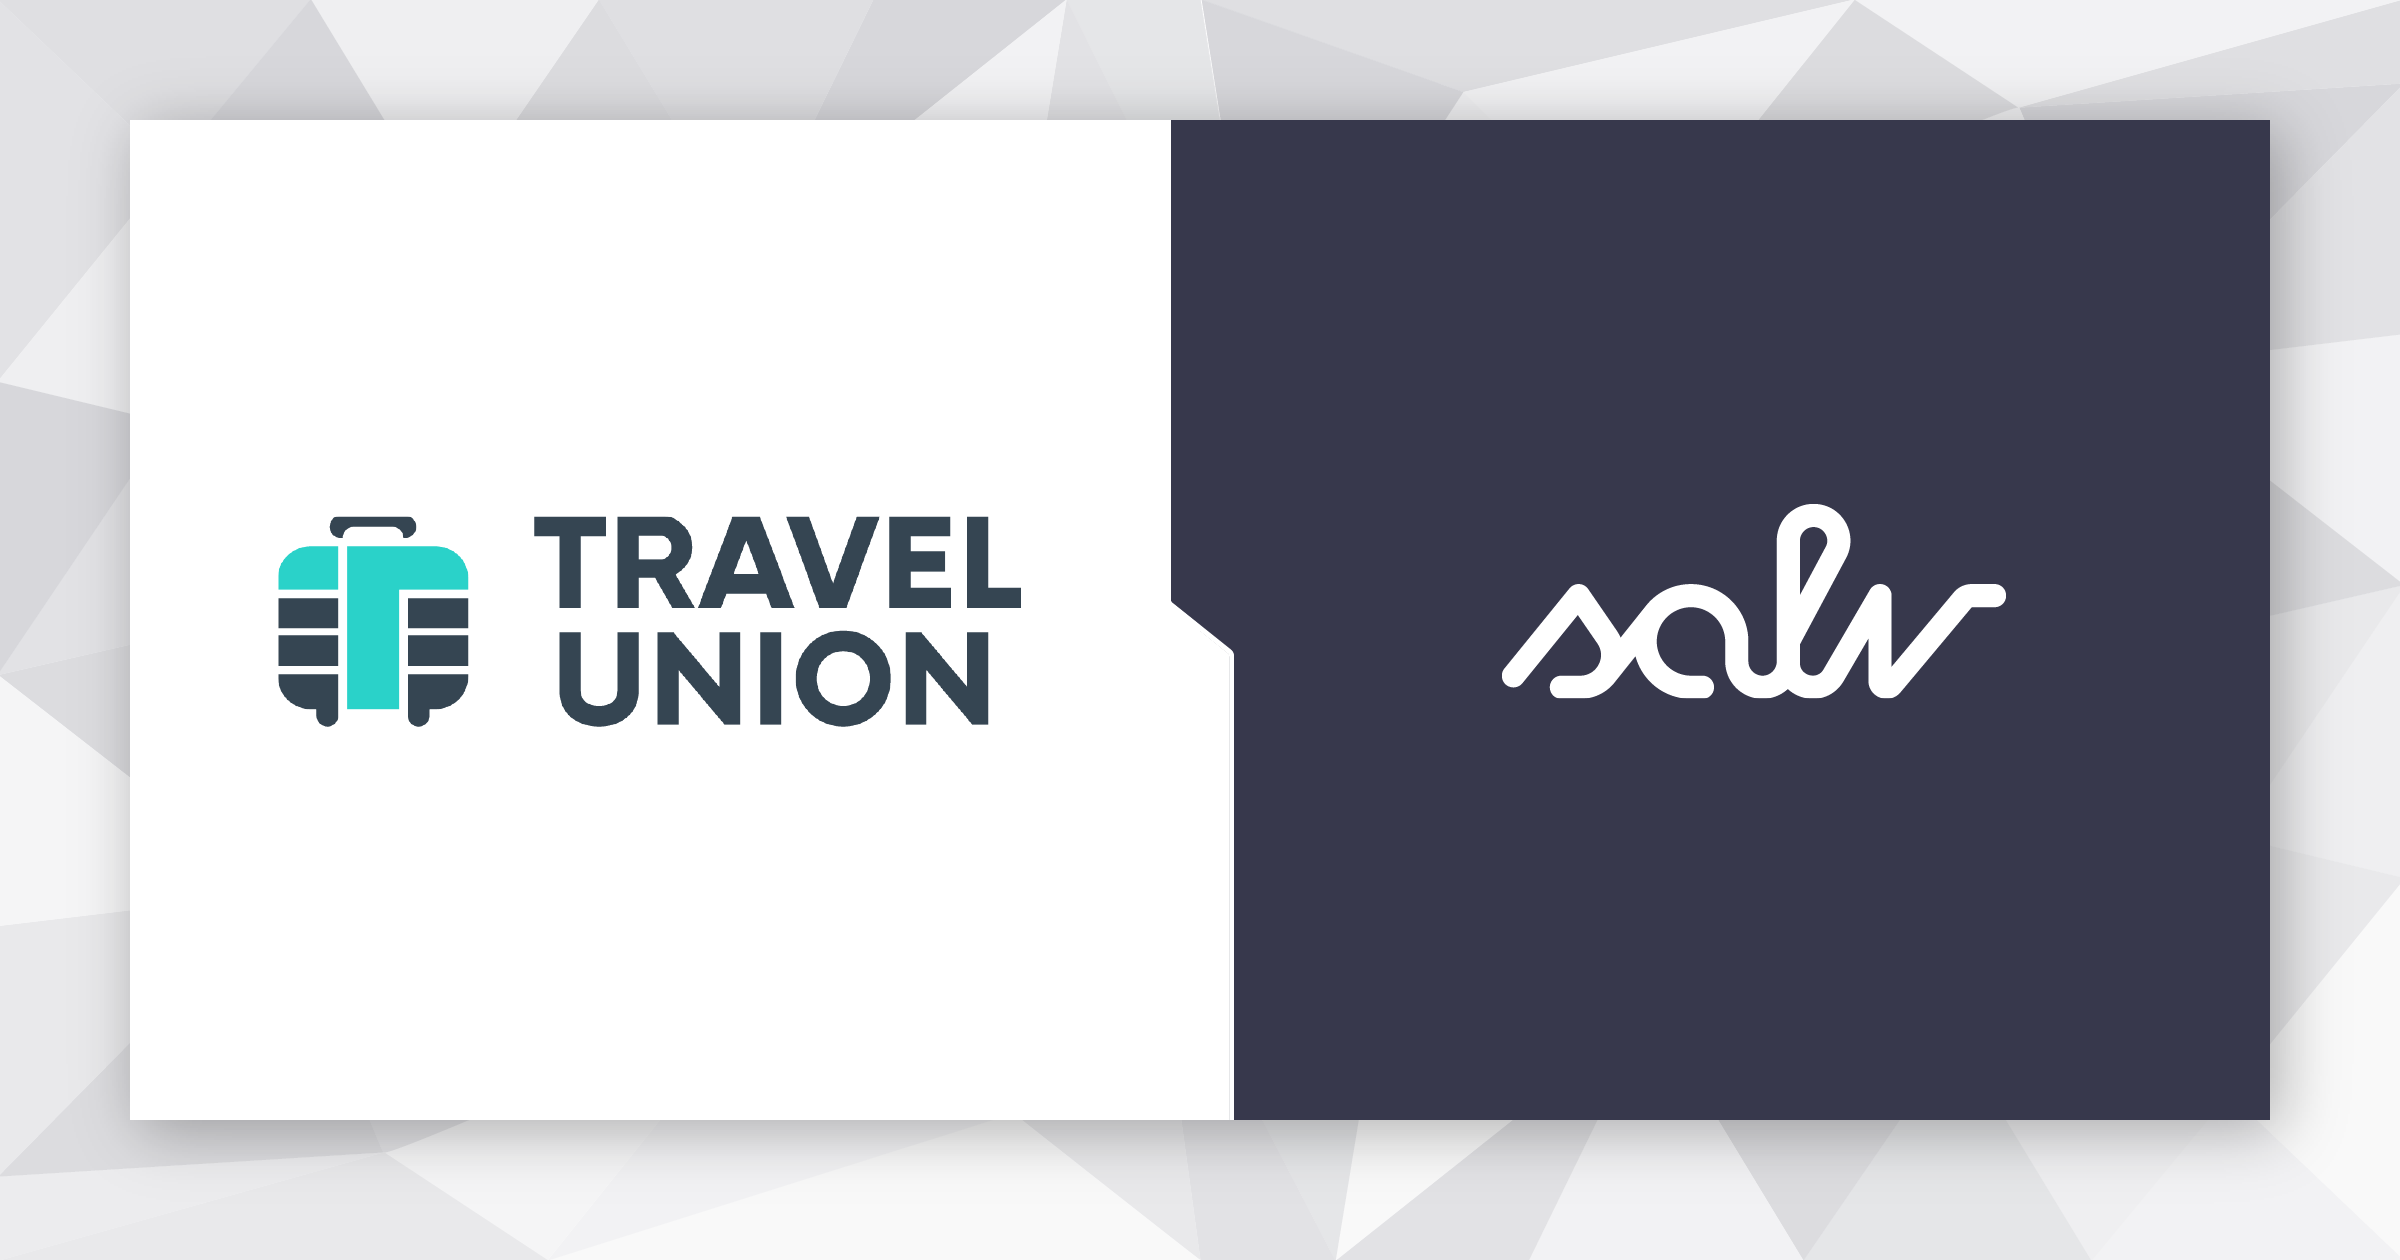 salv_travel_union_light.png